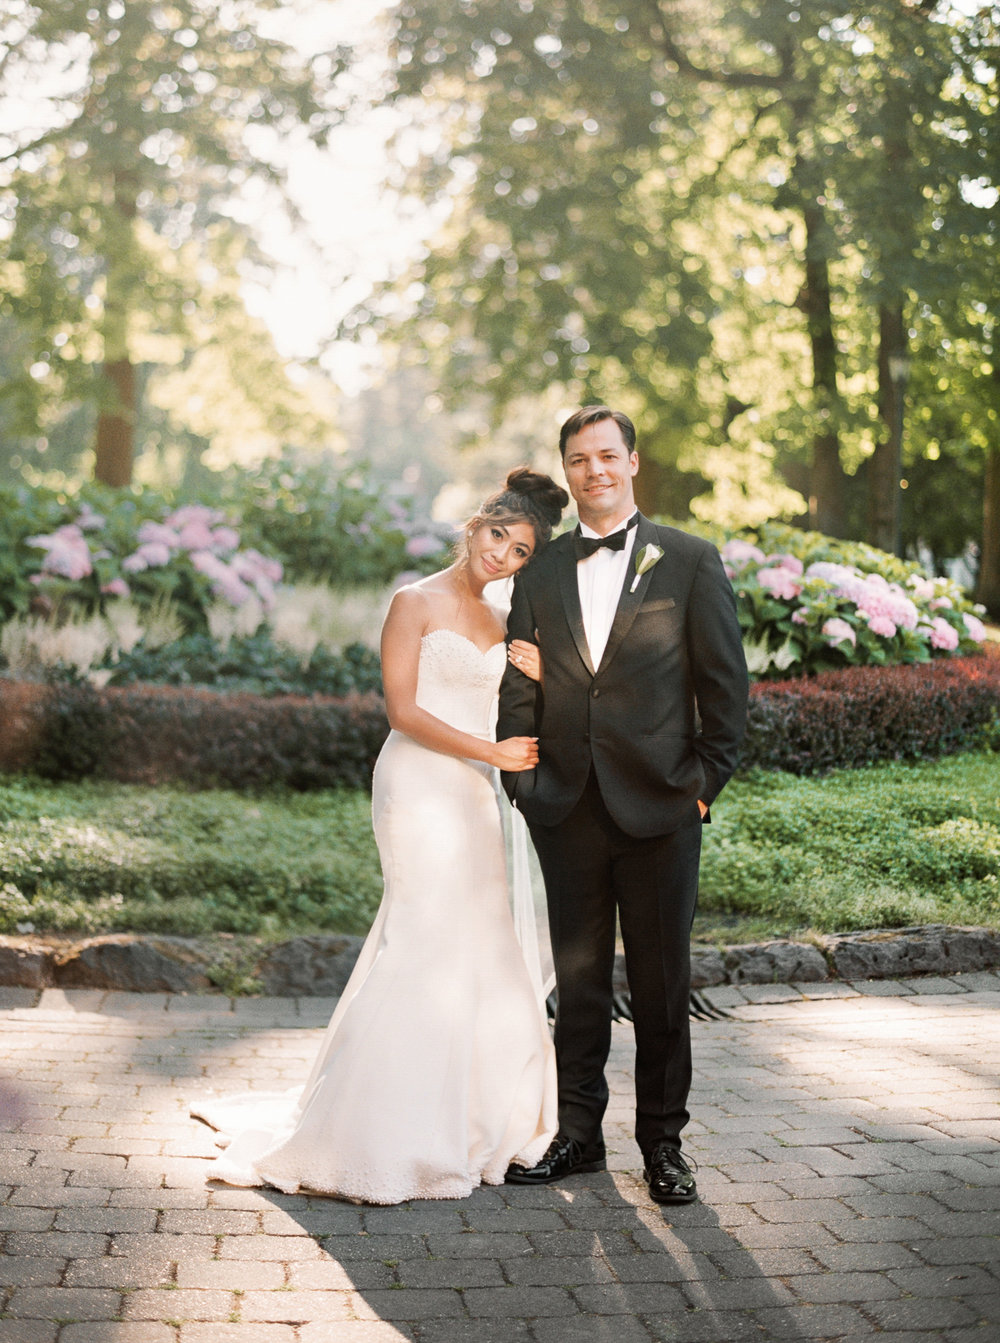 092OutliveCreative_Travel_Photographer_Videographer_Lewis&Clark_Oregon_Elegant_BlackTie_Destination_Wedding.jpg